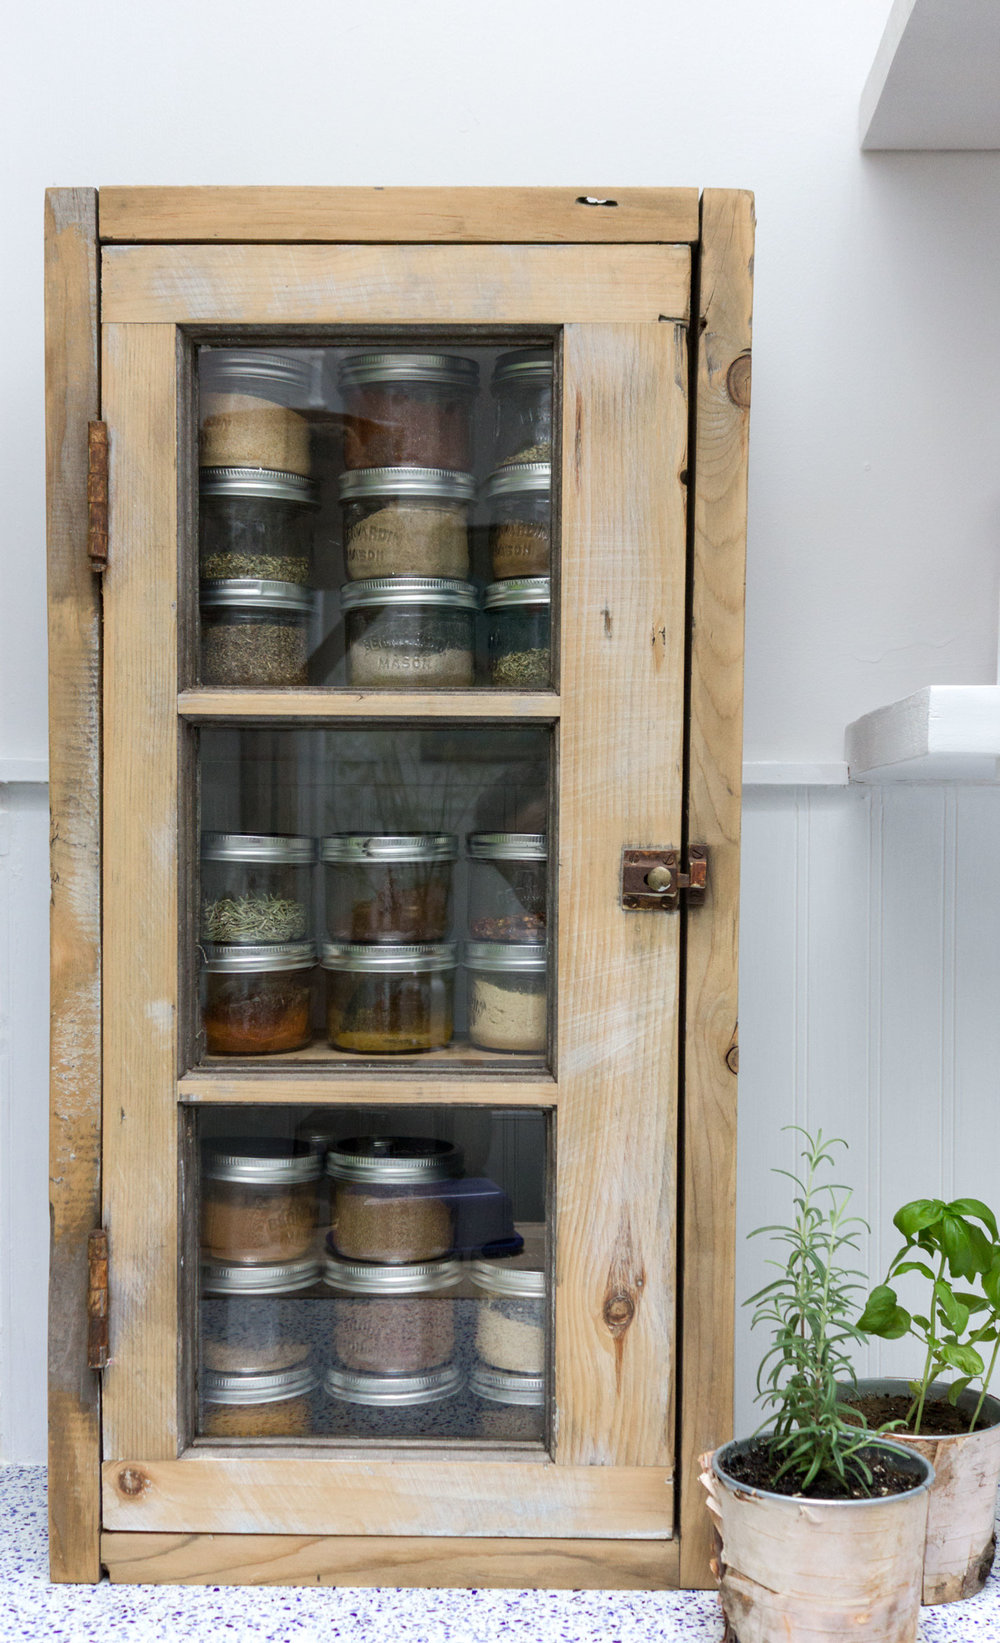 spice organization for baking and organized kitchen